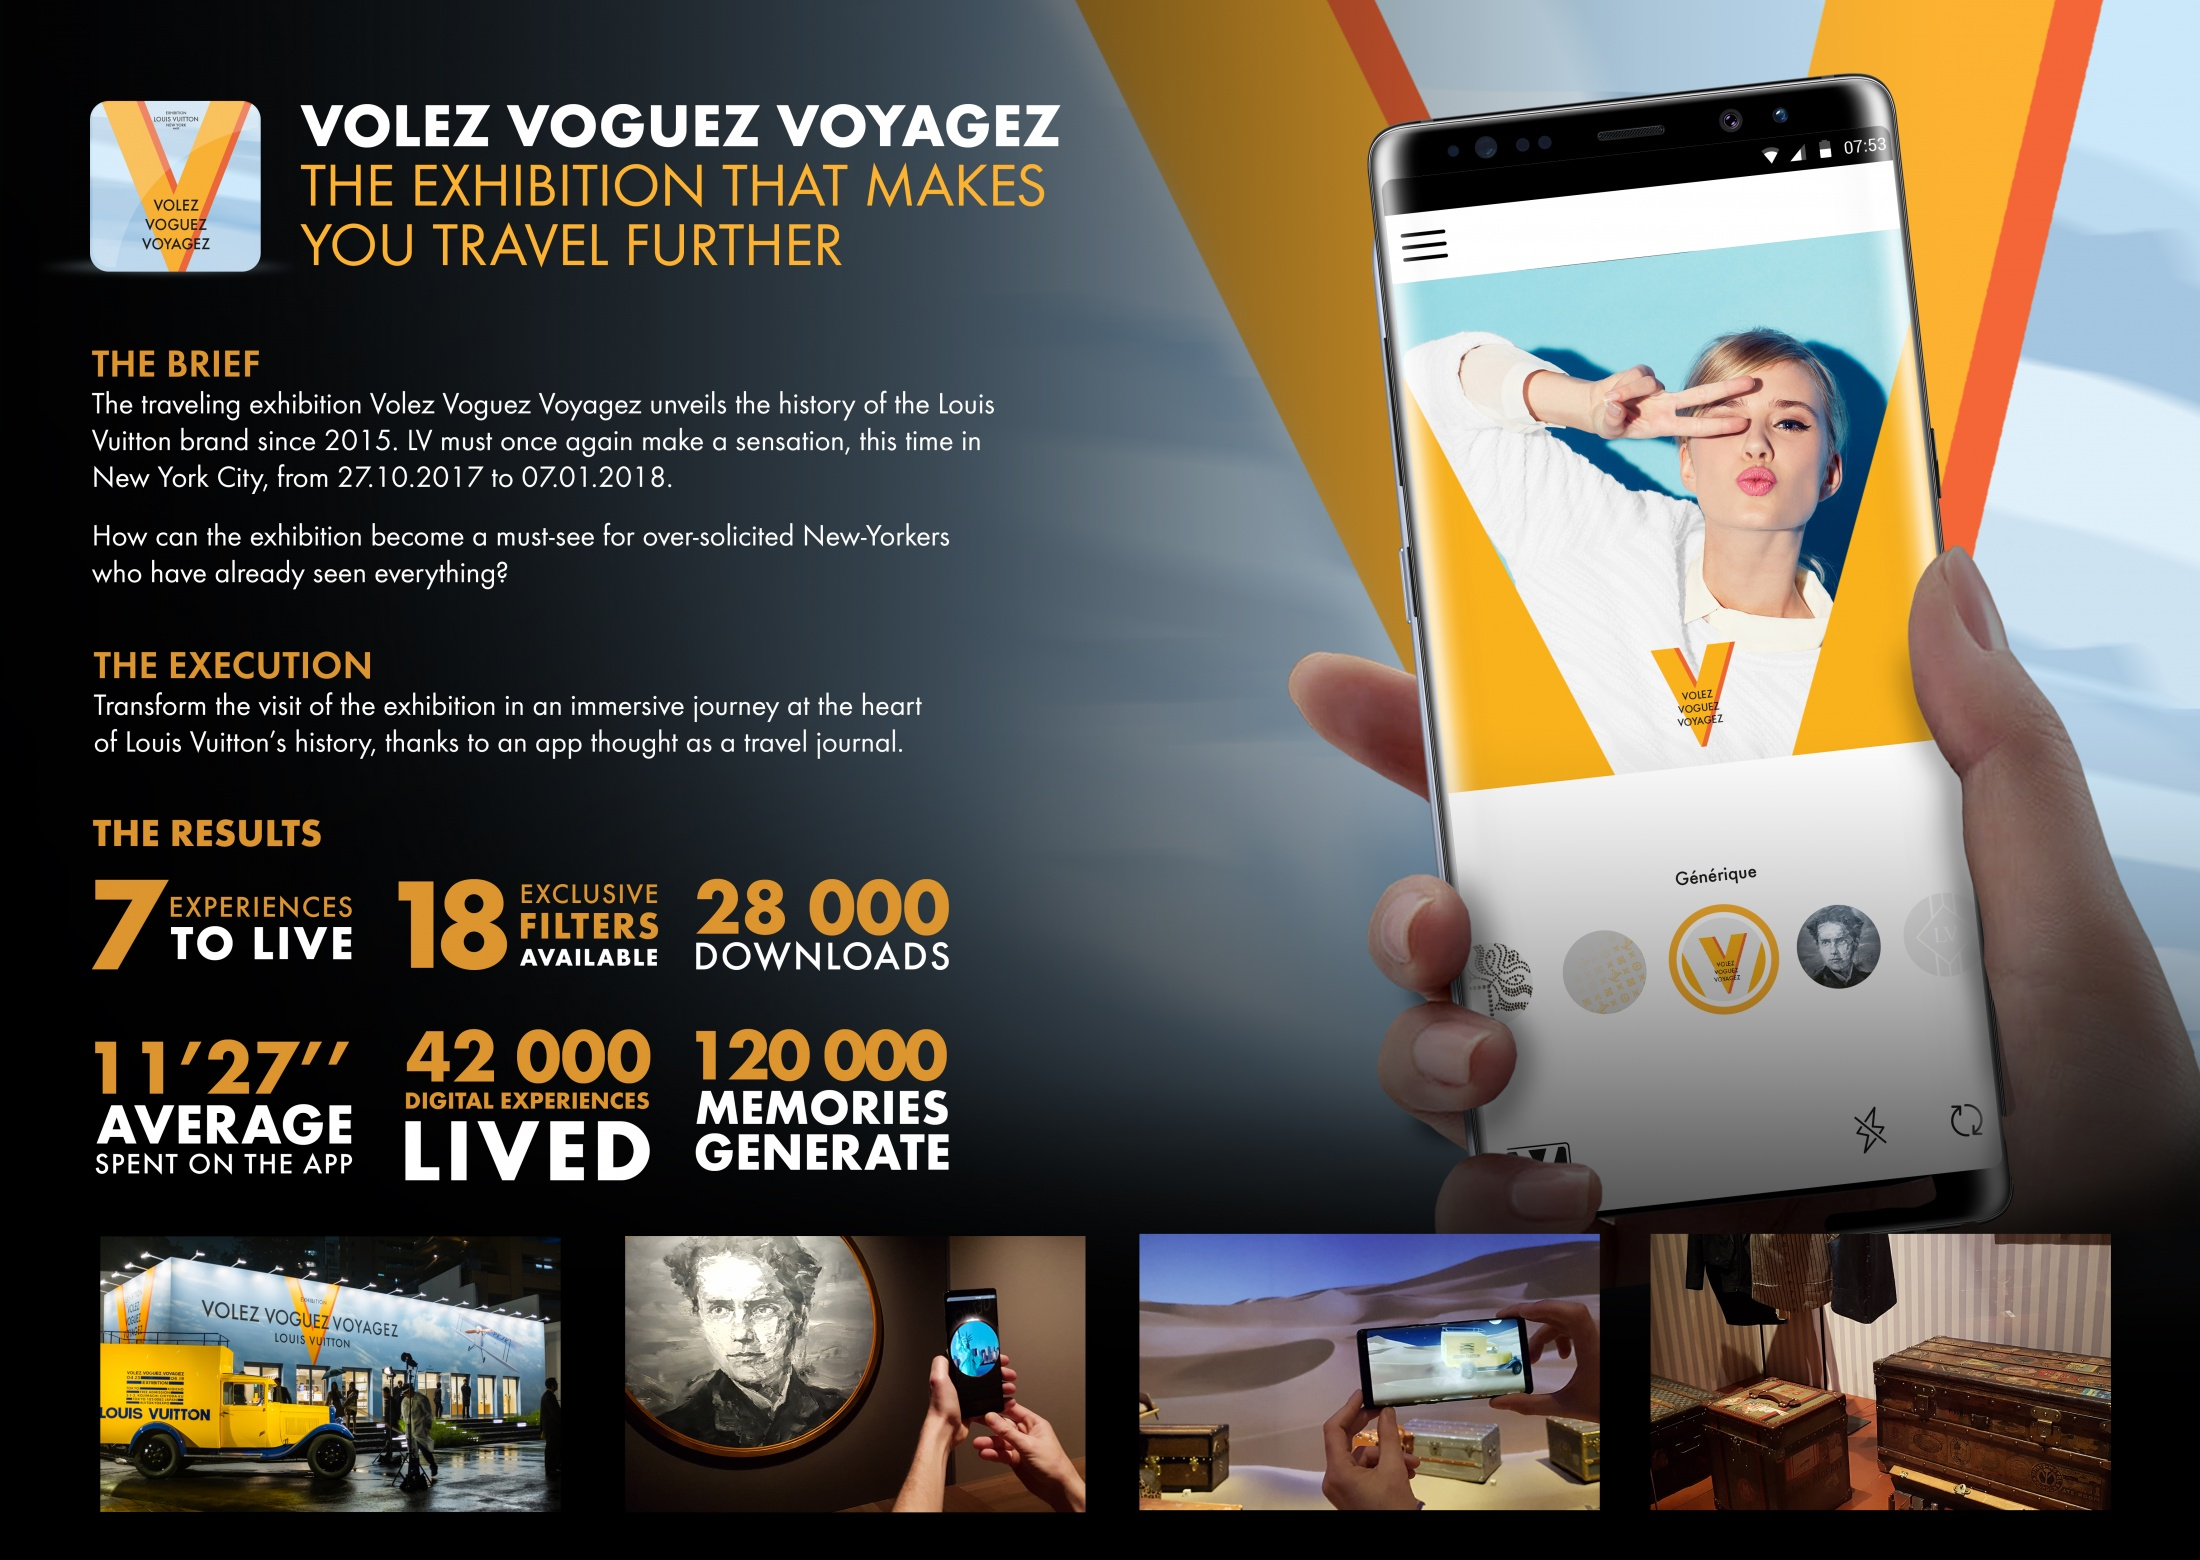 Thumbnail for Volez Voguez Voyagez NYC Application